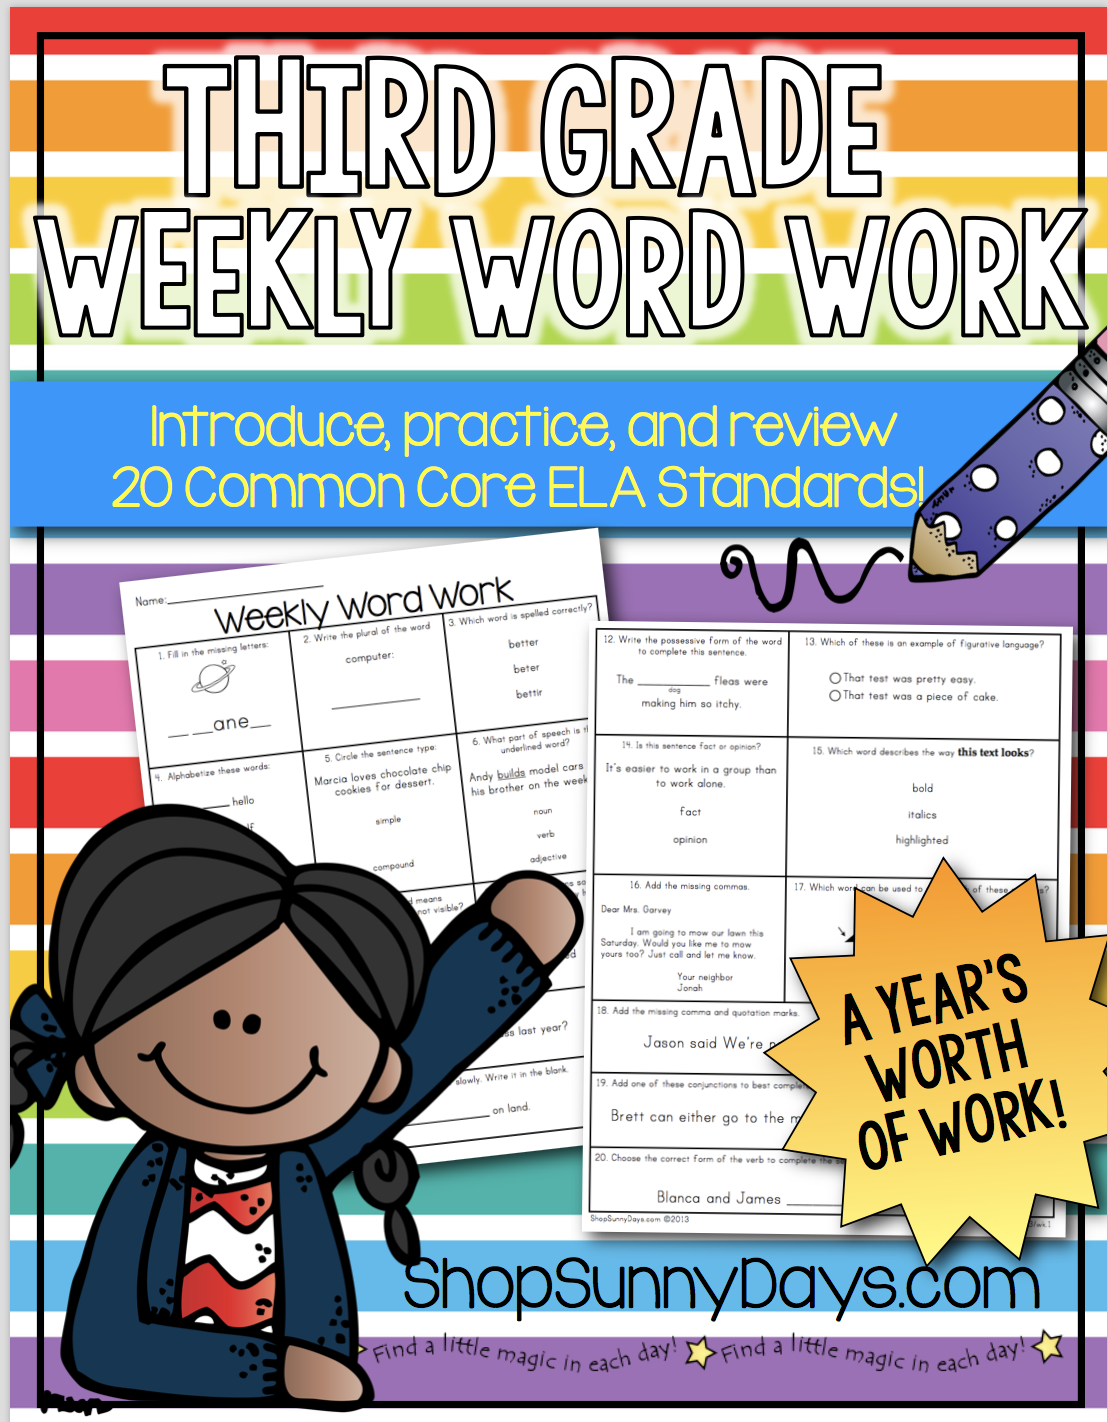 Third Grade Weekly Word Work